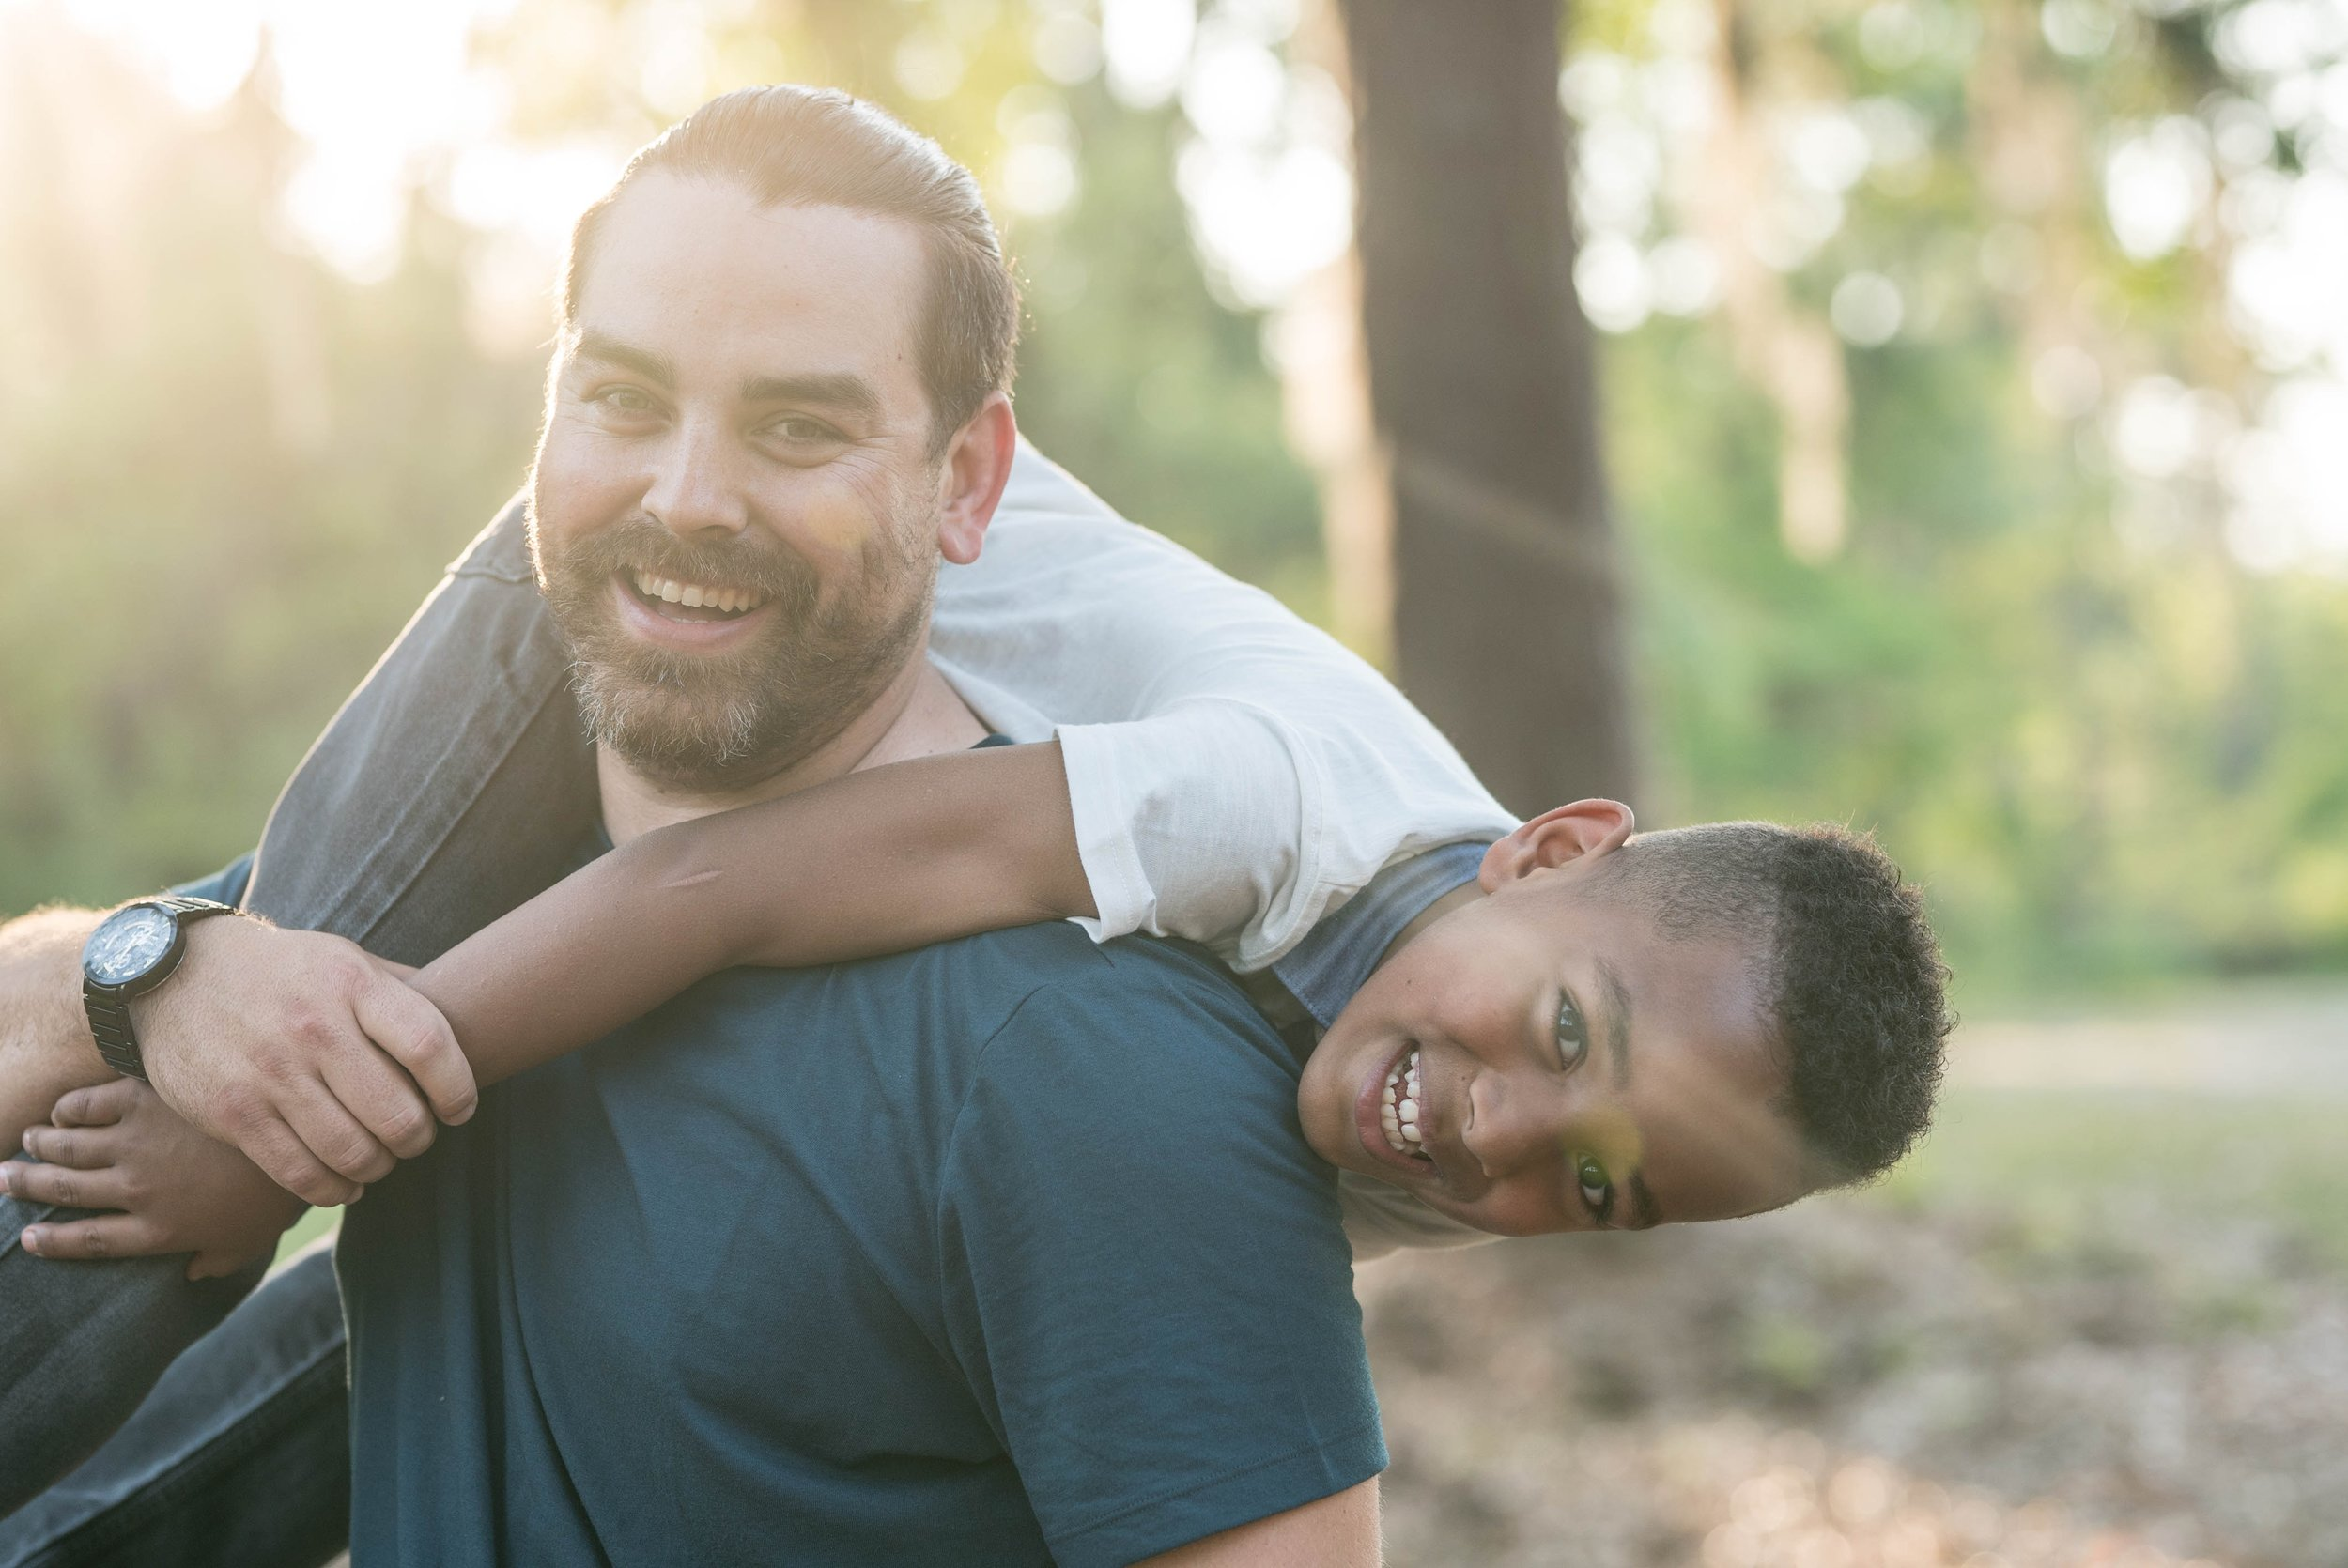 2019 Child Abuse Prevention Guide: Strong & Thriving Families